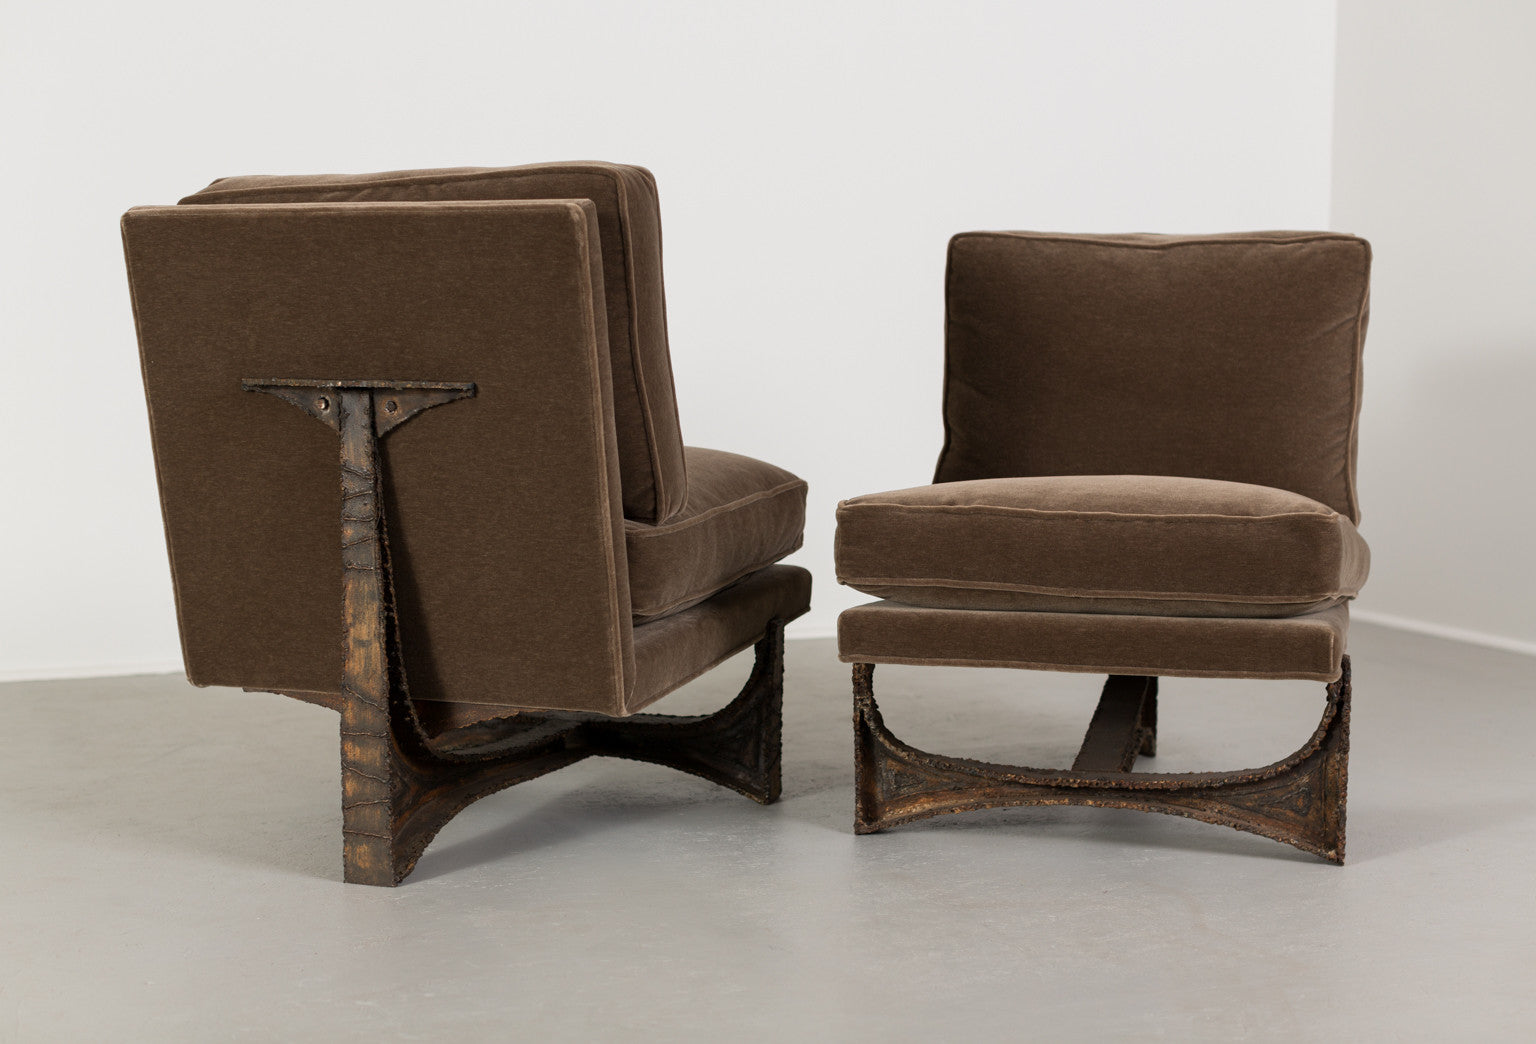 Paul Evans Studio Chairs, Pair, 1970 - The Exchange Int